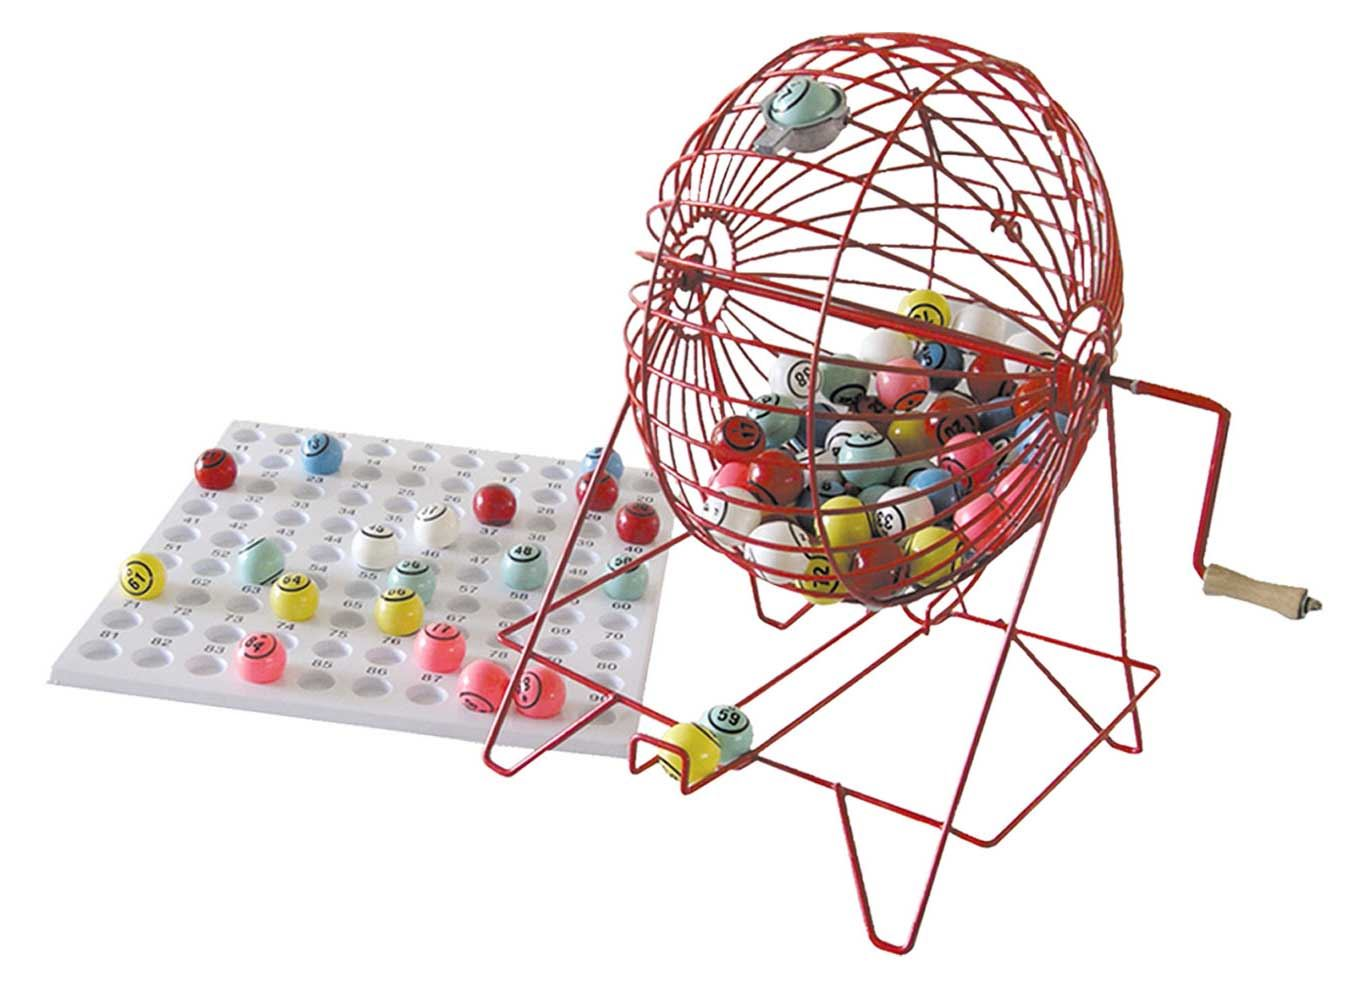 Large Bingo Cage with 38mm Balls & Checkboard